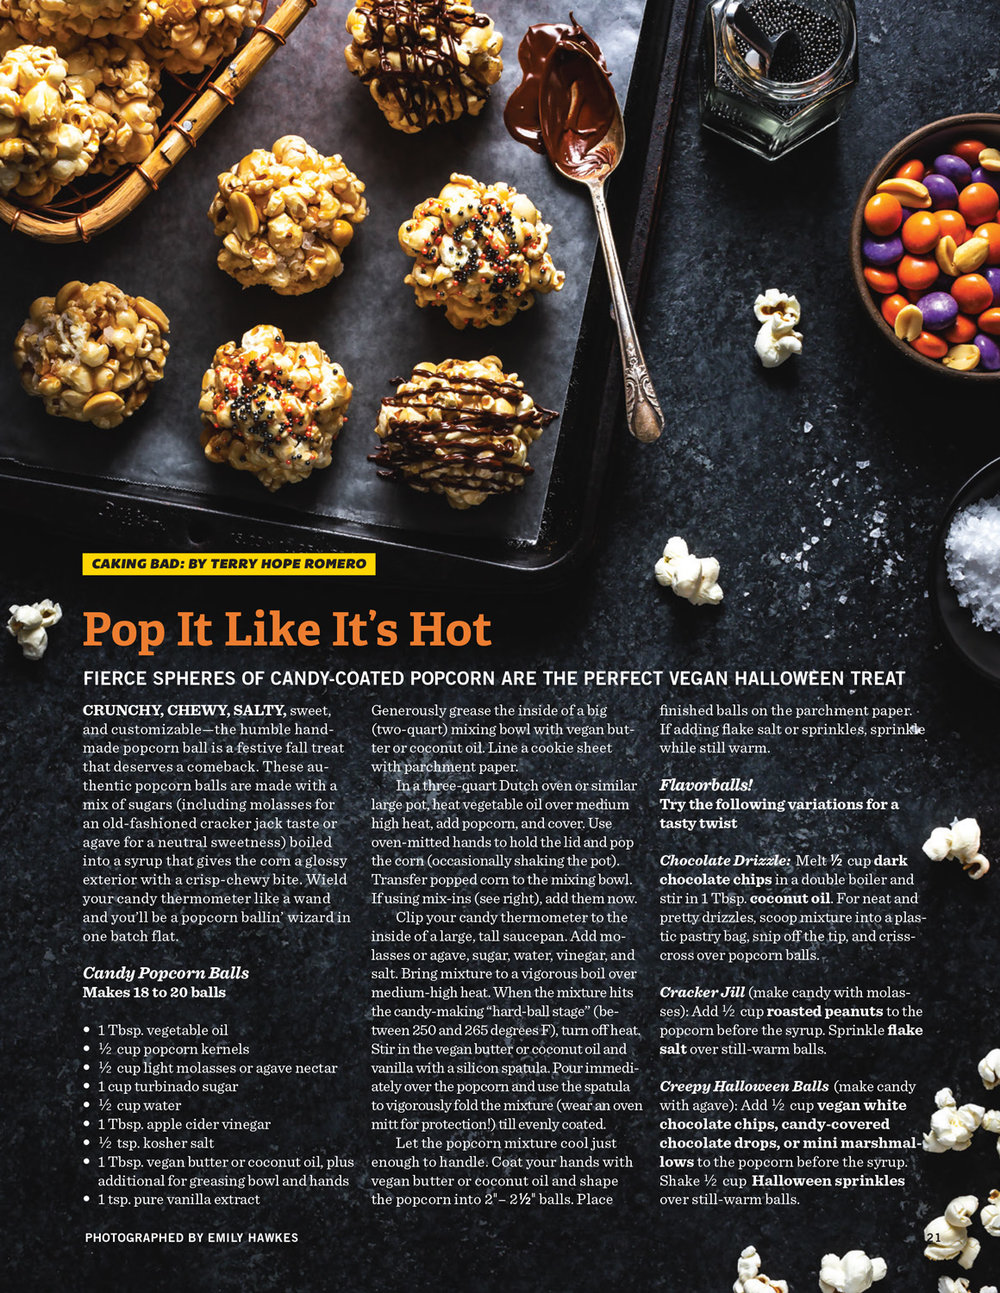 popcorn balls editorial food photography